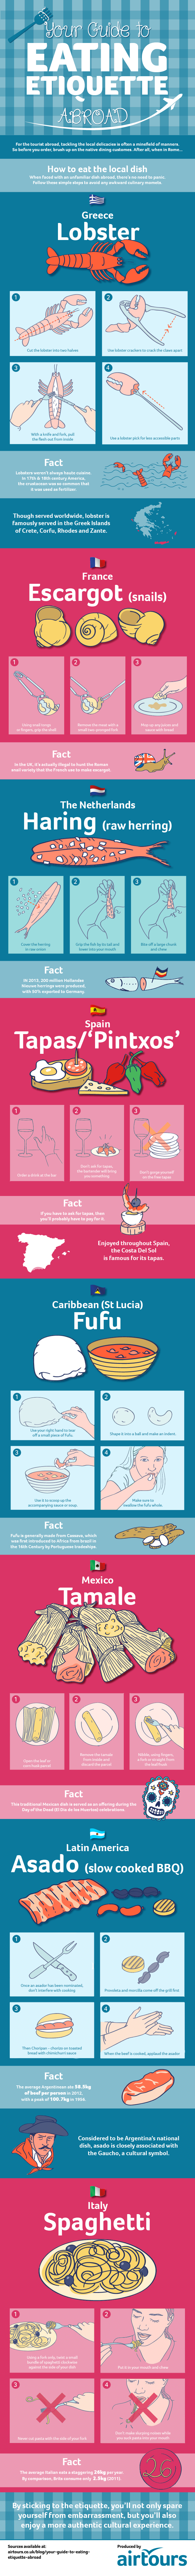 AIRTOURS-GUIDE-TO-EATING-INFOGRAPHIC9